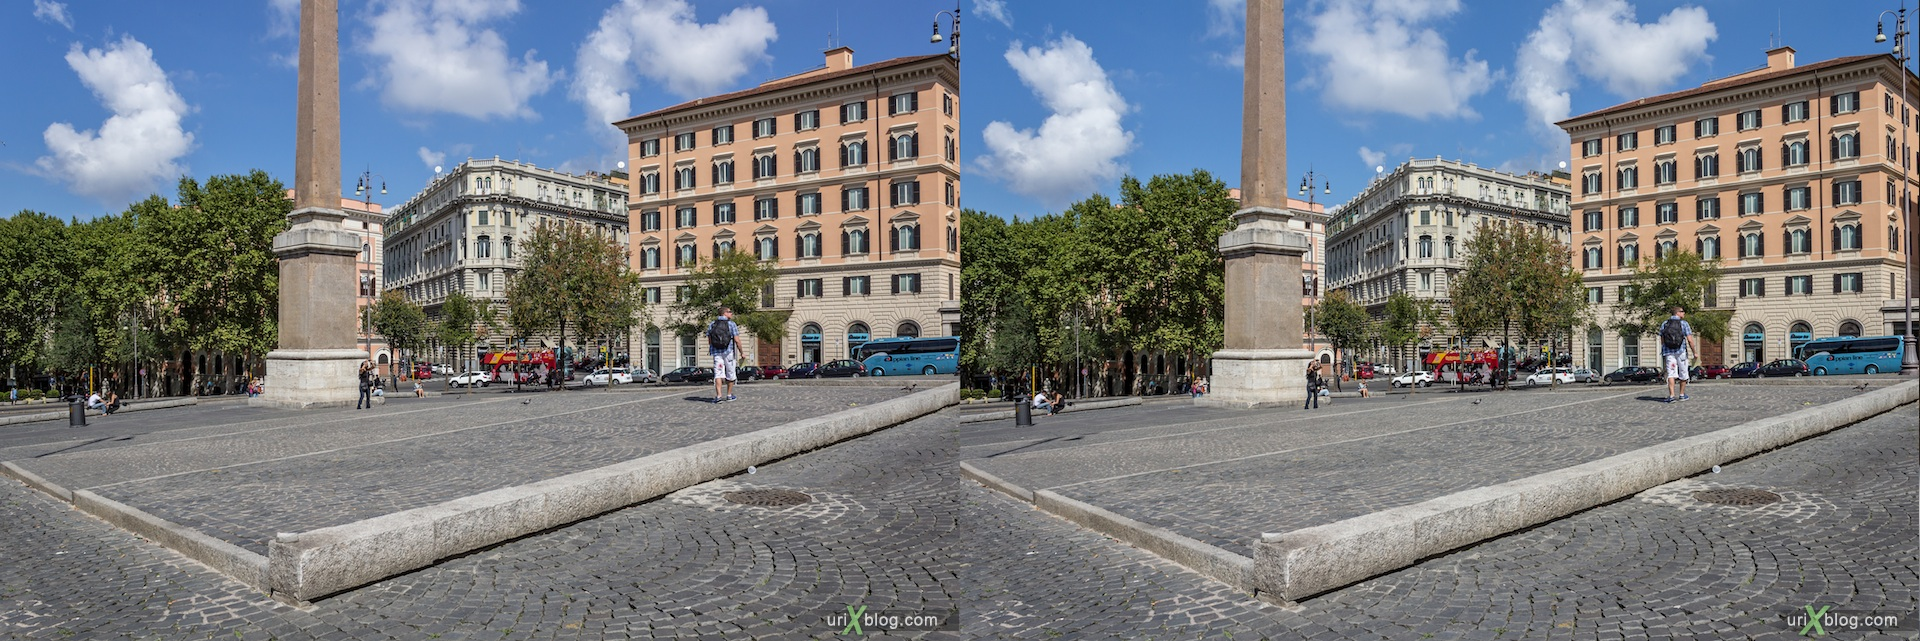 2012, Esquiline square, Esquiline Obelisk, Rome, Italy, Europe, 3D, stereo pair, cross-eyed, crossview, cross view stereo pair